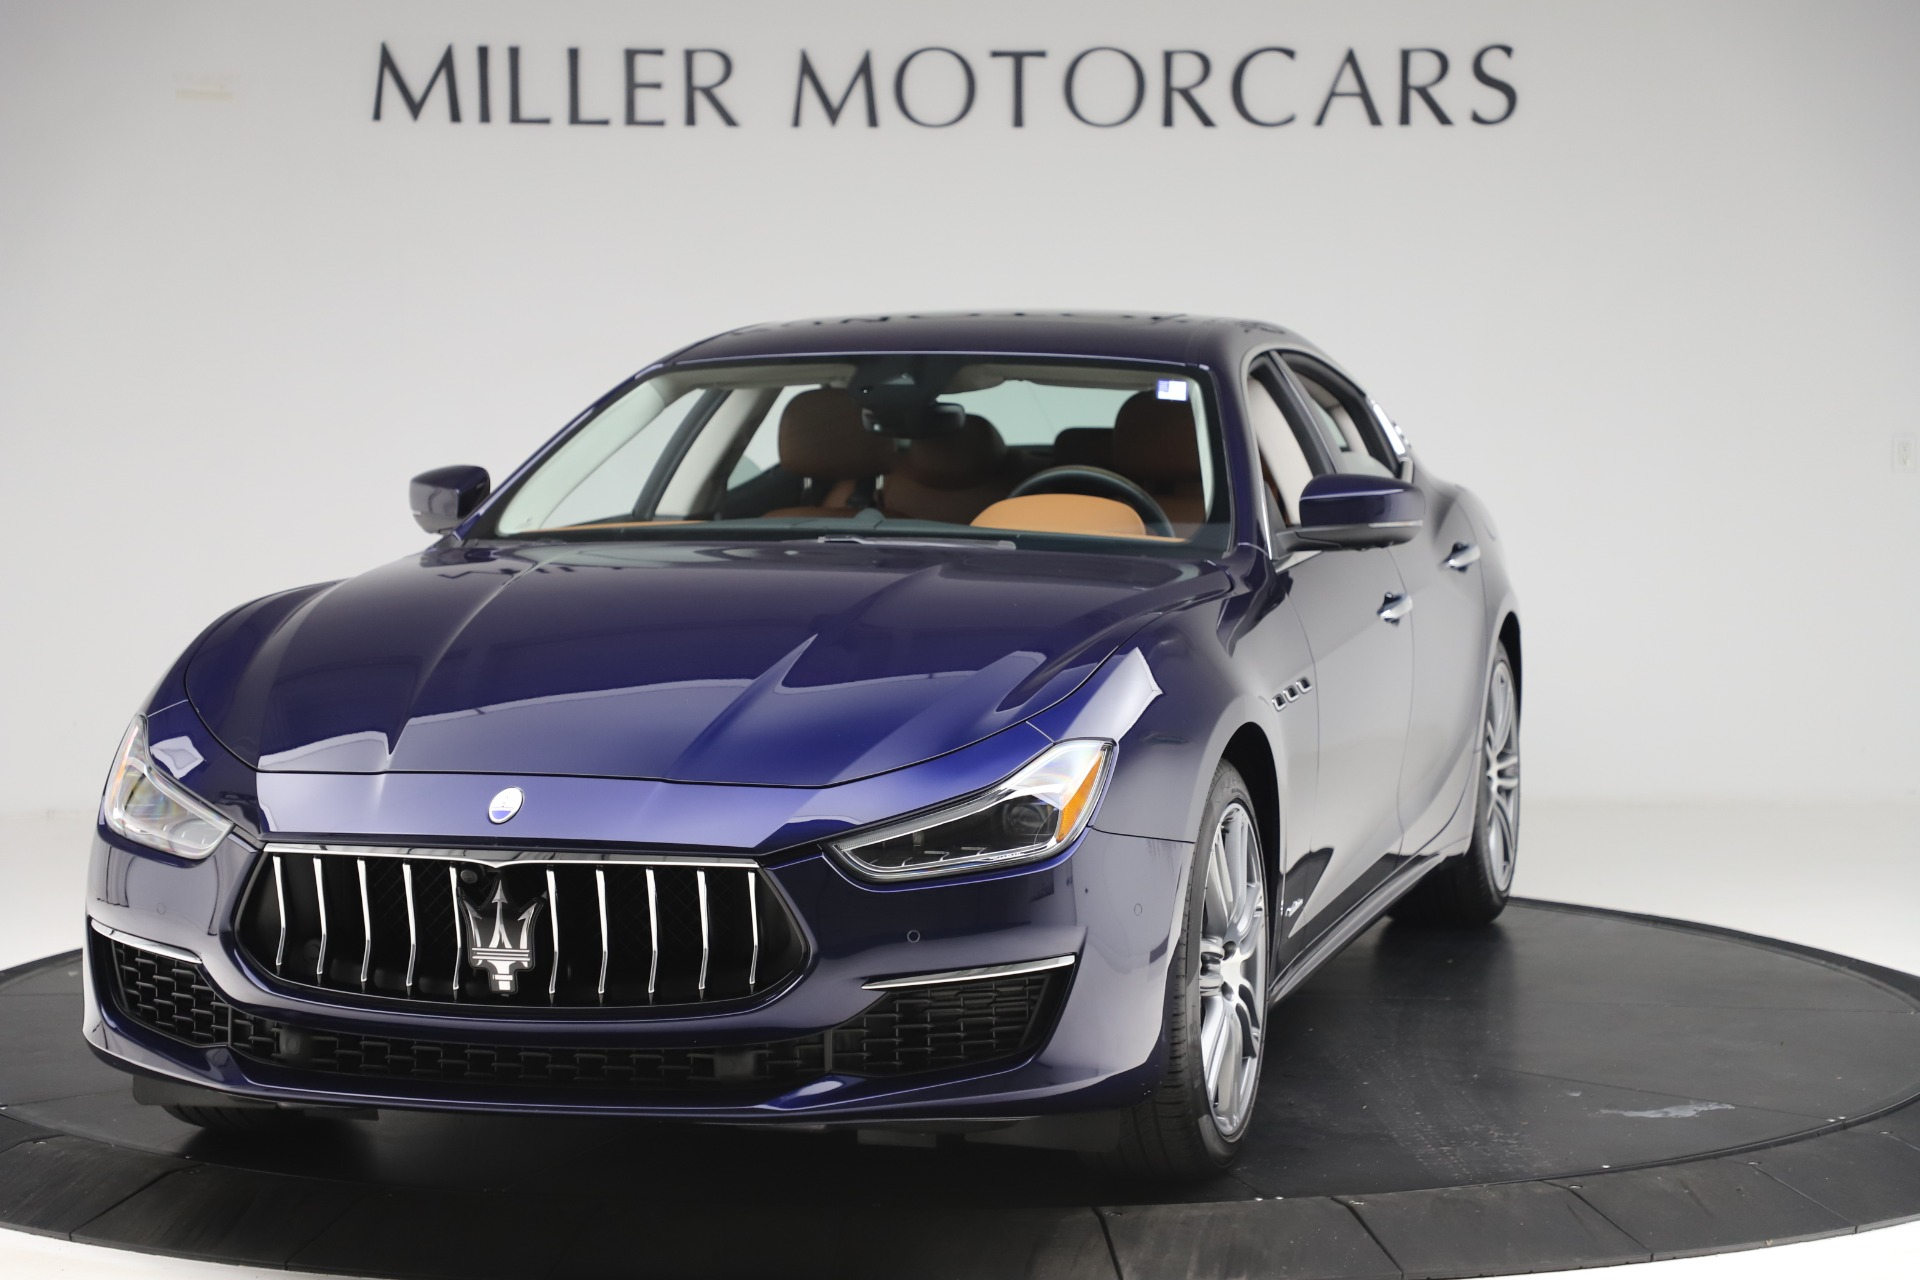 New 2020 Maserati Ghibli S Q4 GranLusso for sale Sold at McLaren Greenwich in Greenwich CT 06830 1